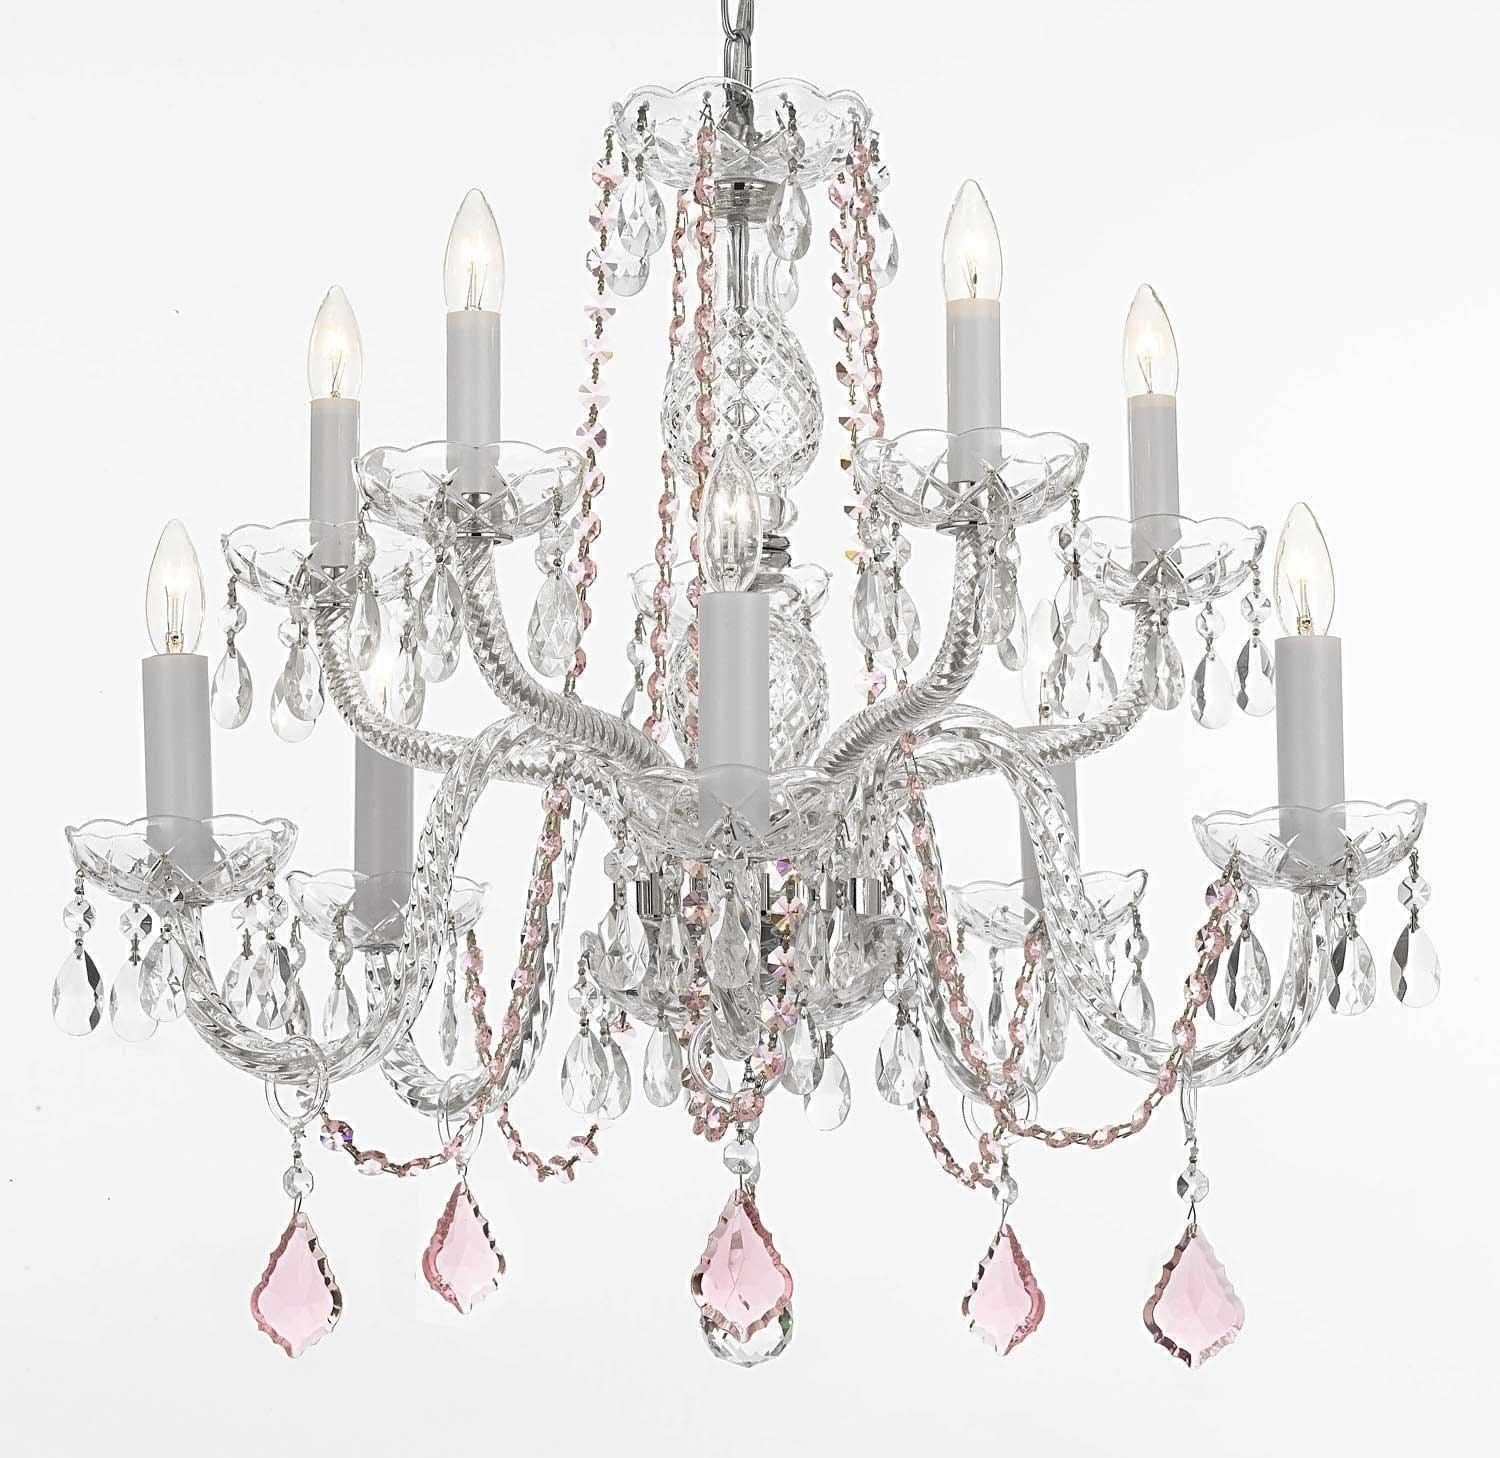 Crystal Chandelier Lighting With Pink Crystal